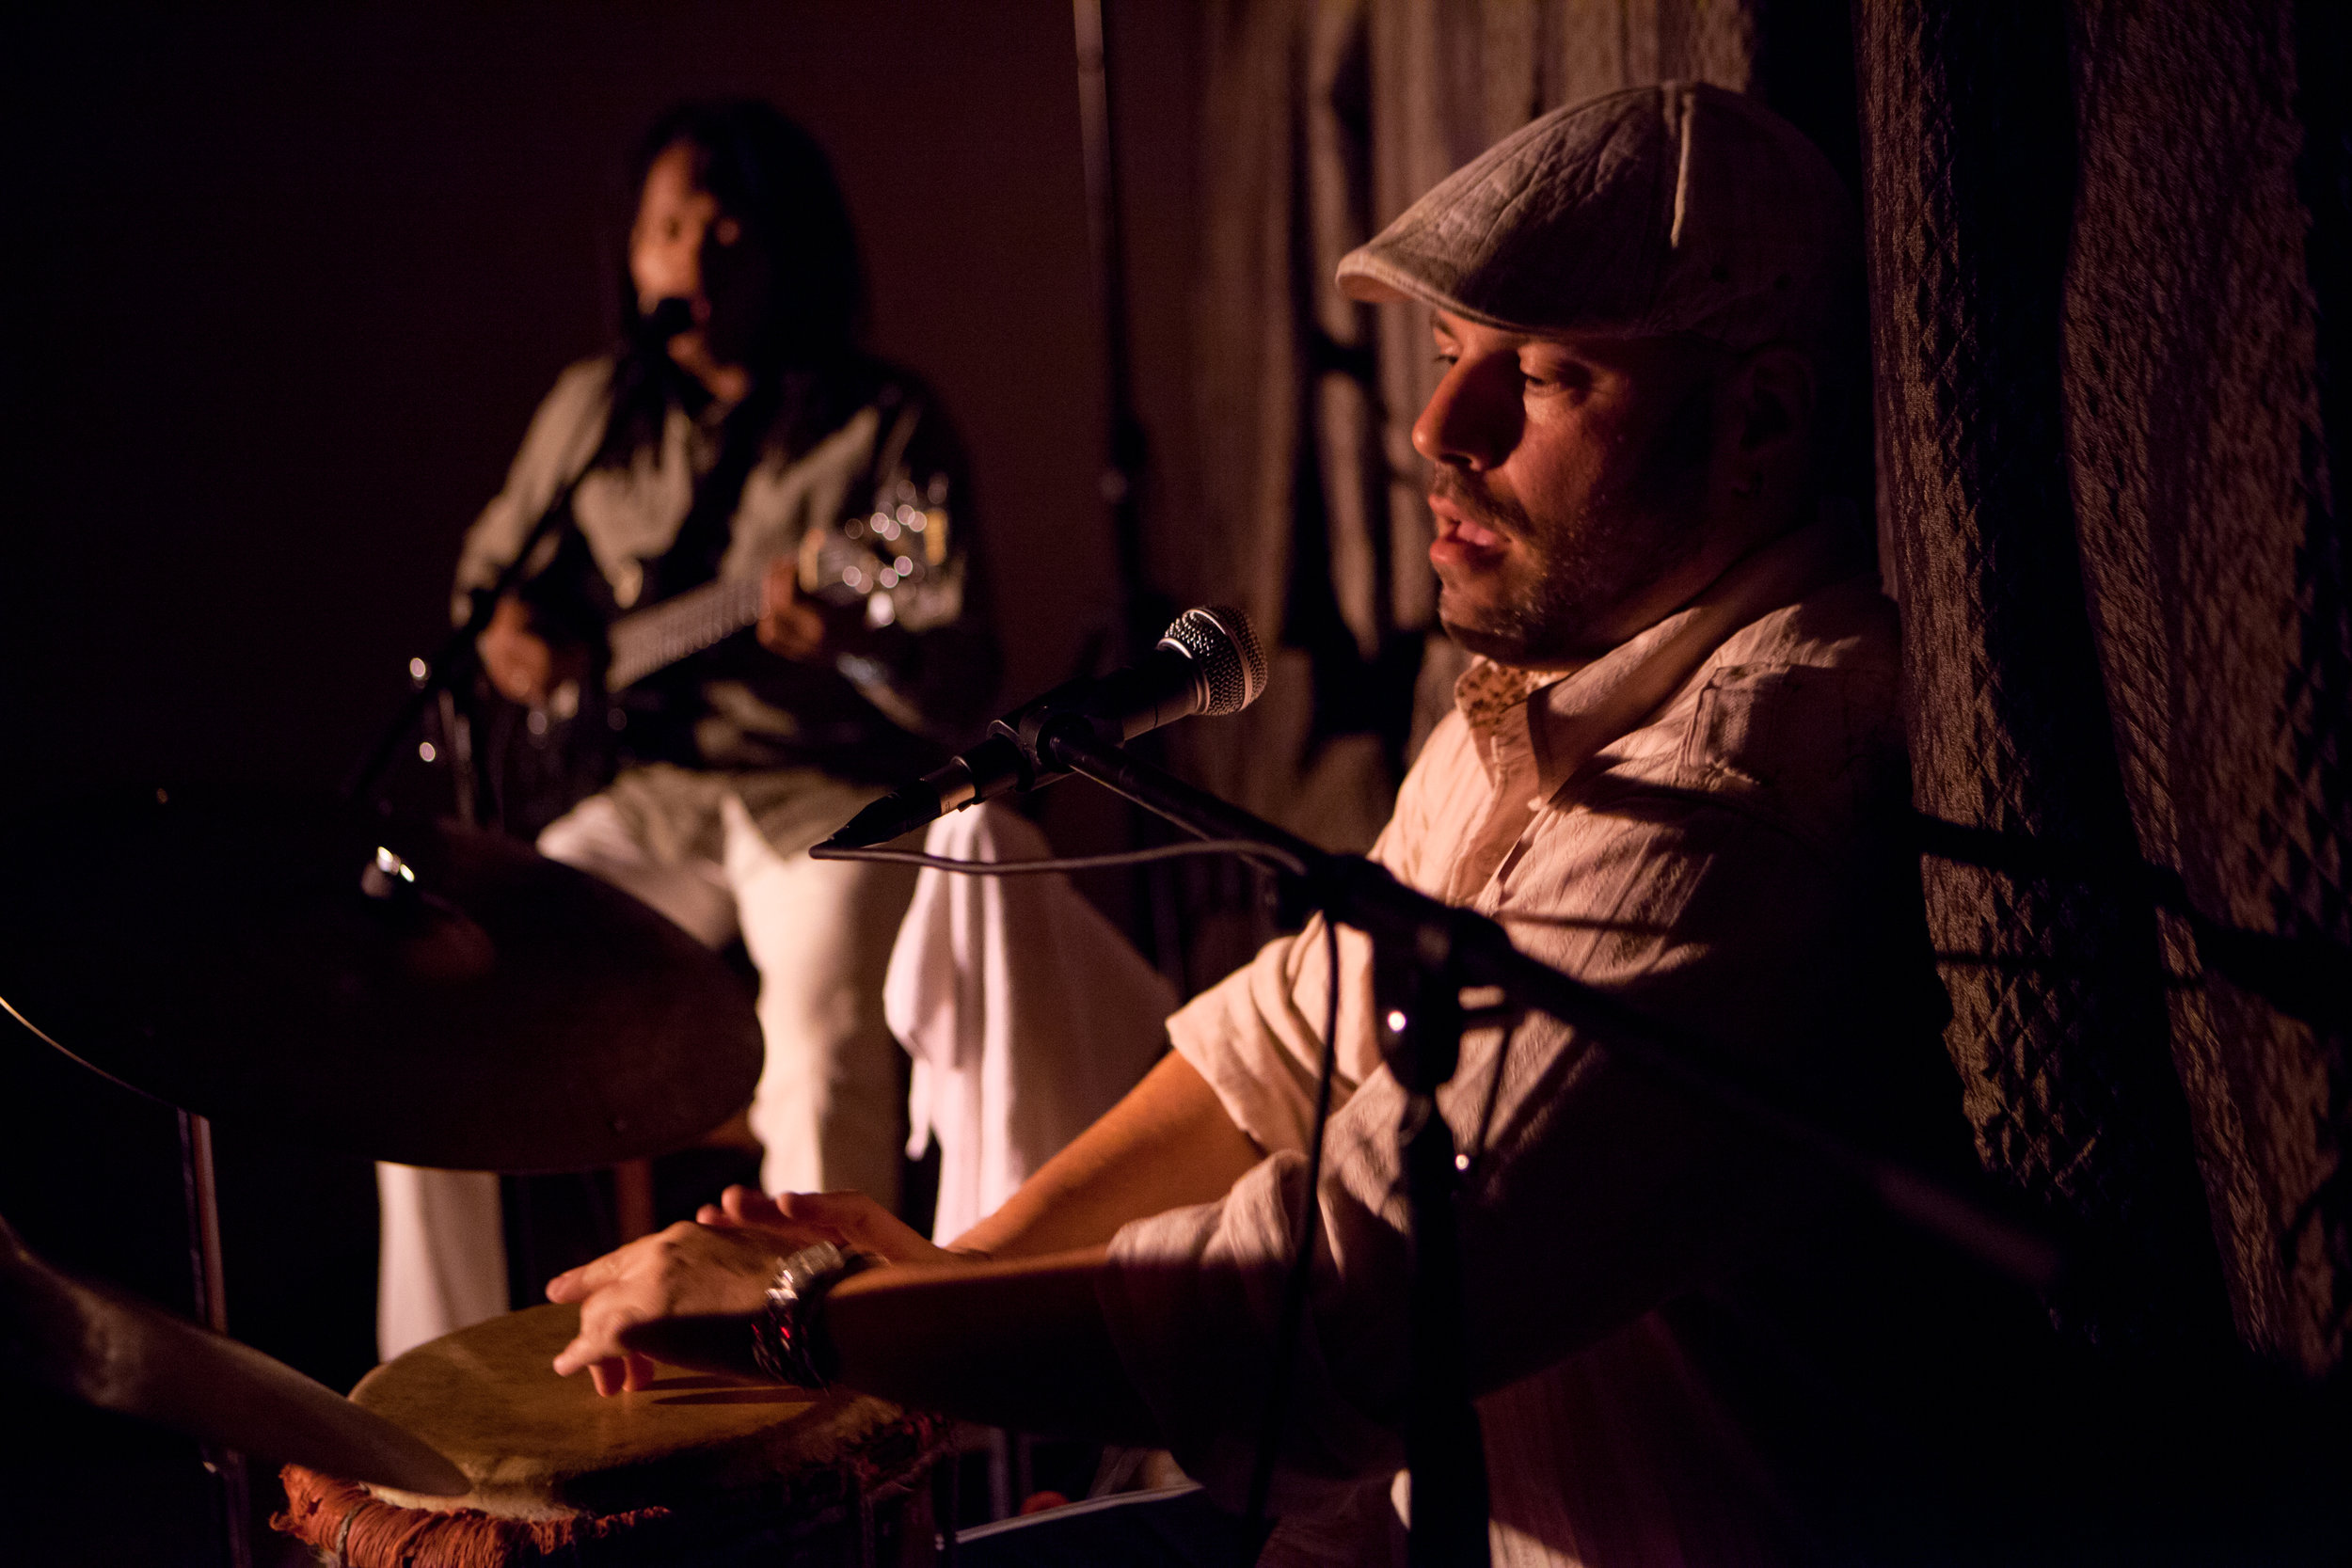 Markus Schwartz and Monelvyno Alexis perfoming as Vu-Duo at The Inkwell in Brooklyn in 2012